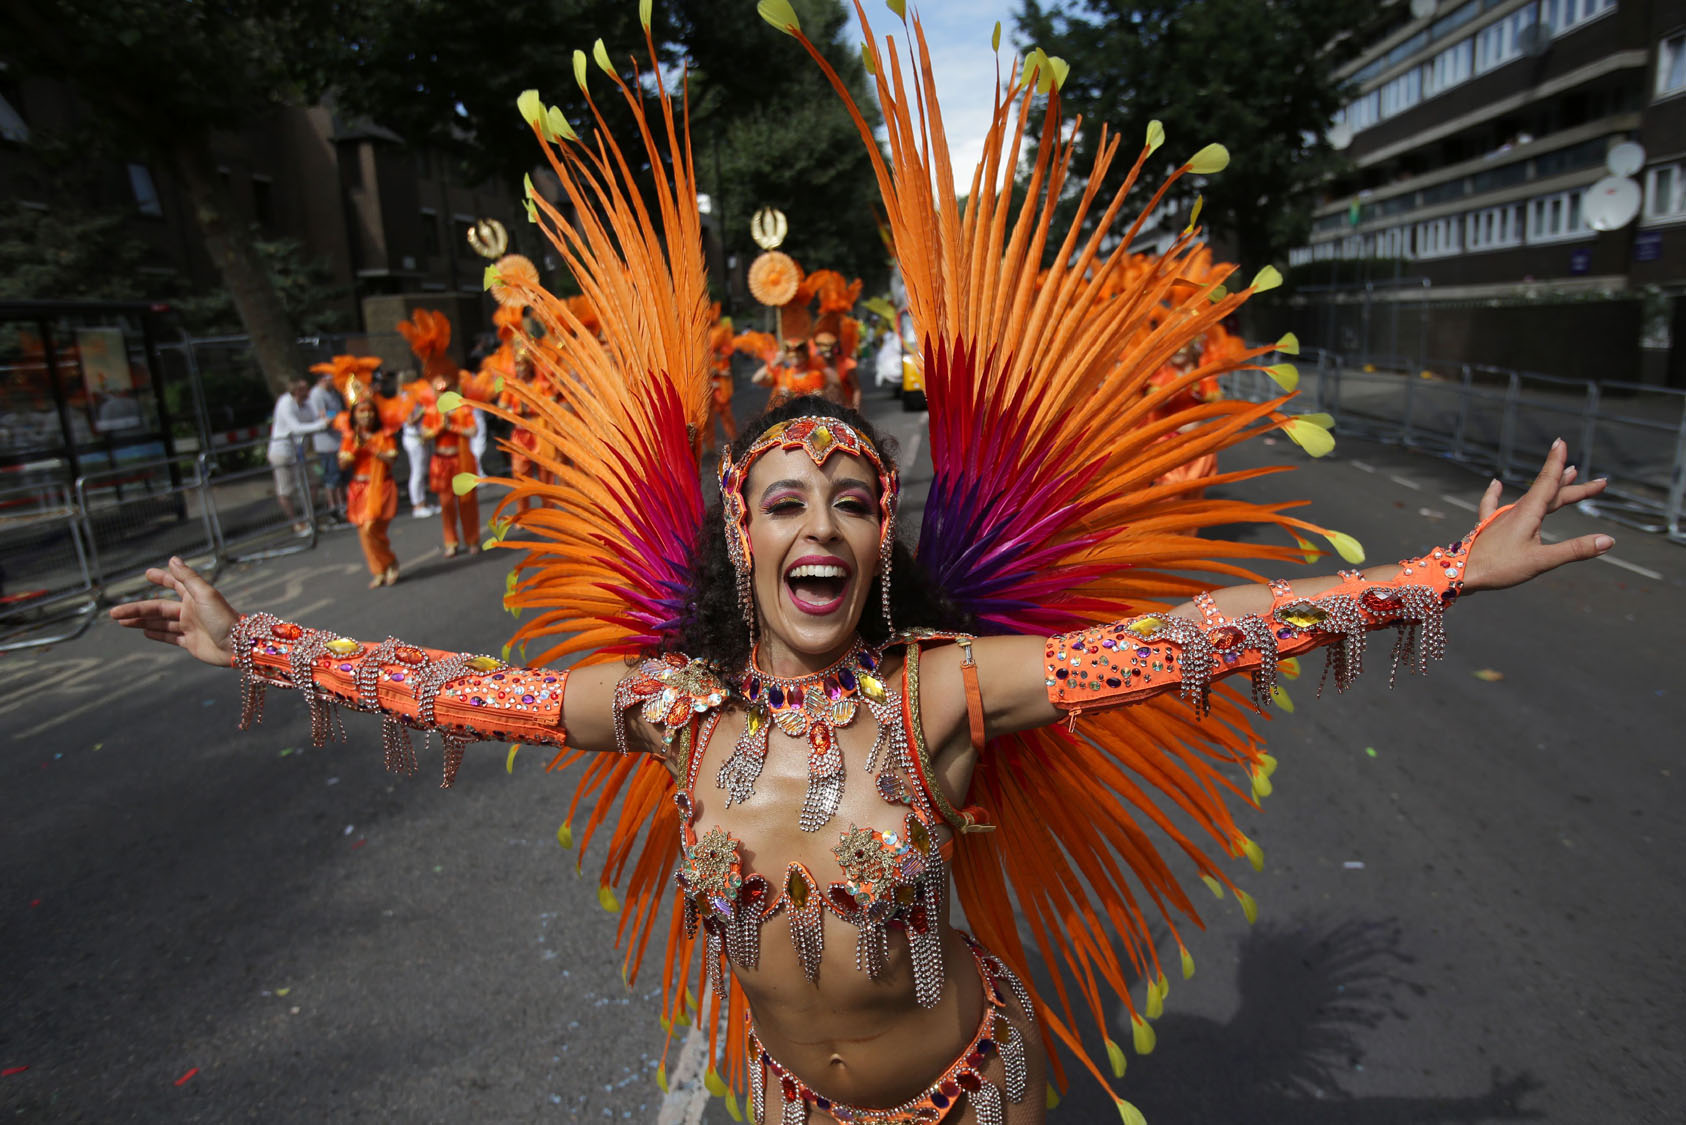 Celebrating Caribbean culture at London's Notting Hill Carnival